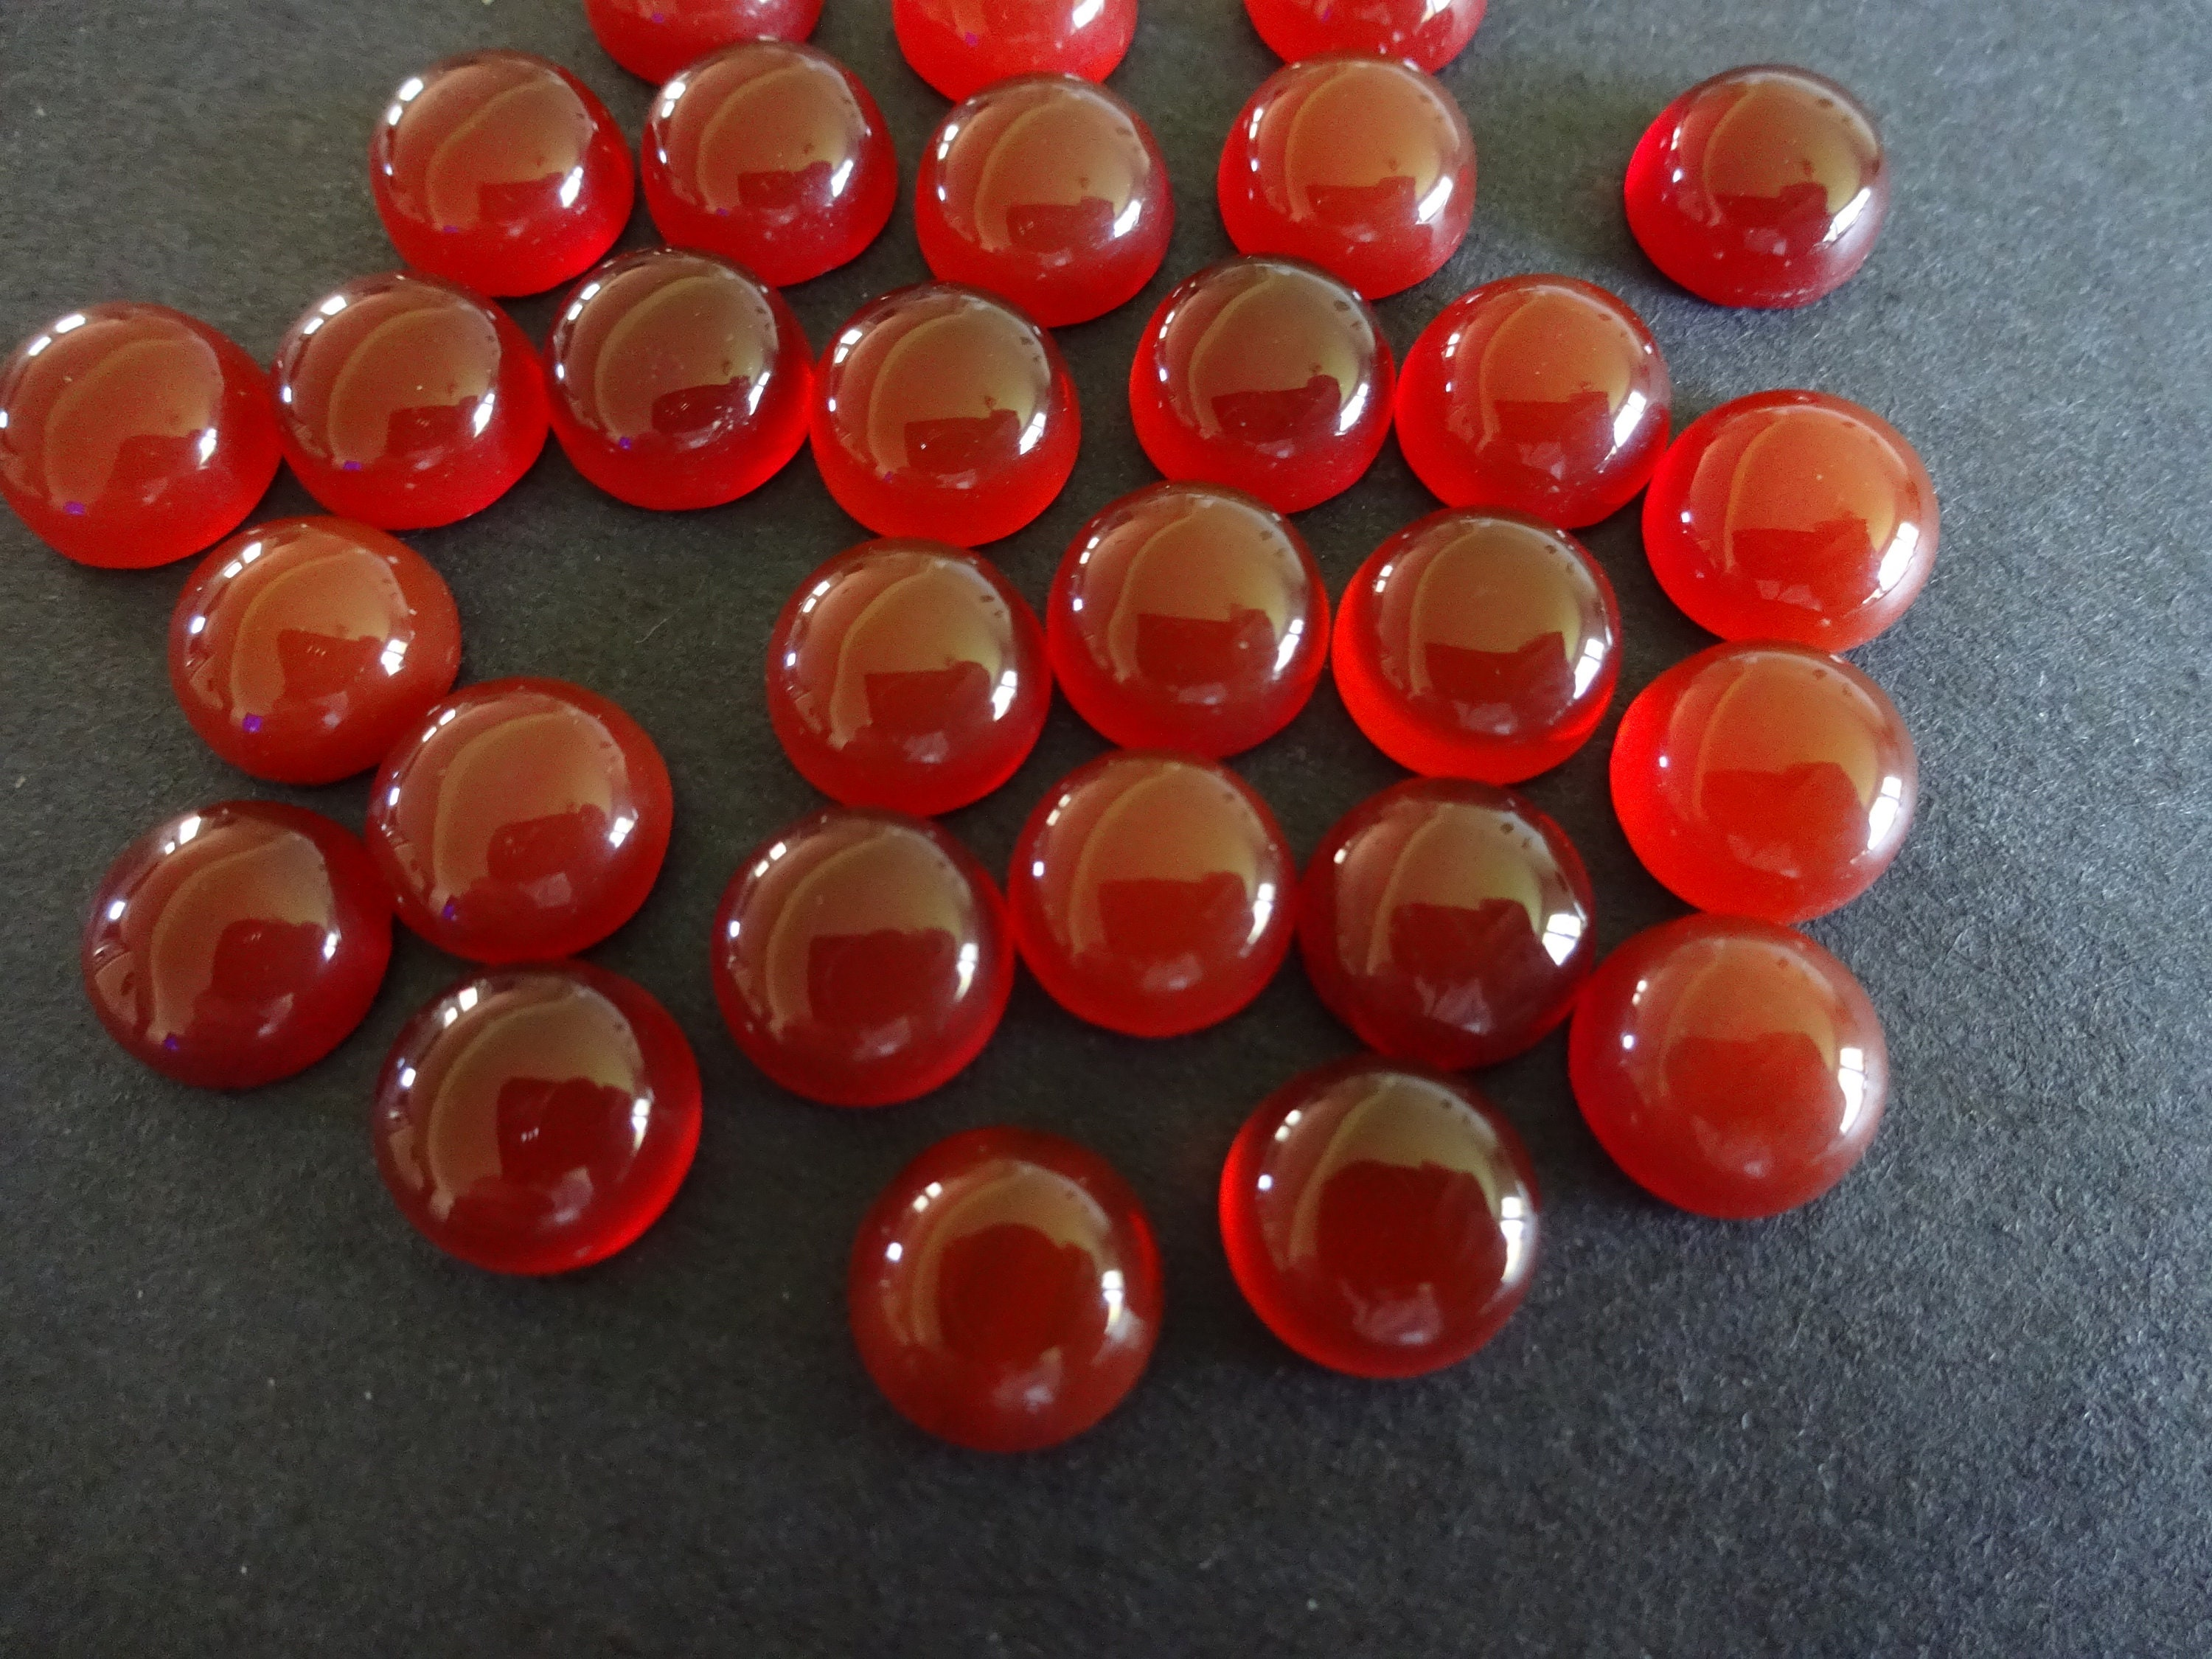 Natural Gemstone Smooth Polished Cabochon 1pcs 6mm Natural Carnelian Cabochon Not Dyed Round Shape Cabochon Treatment: Untreated